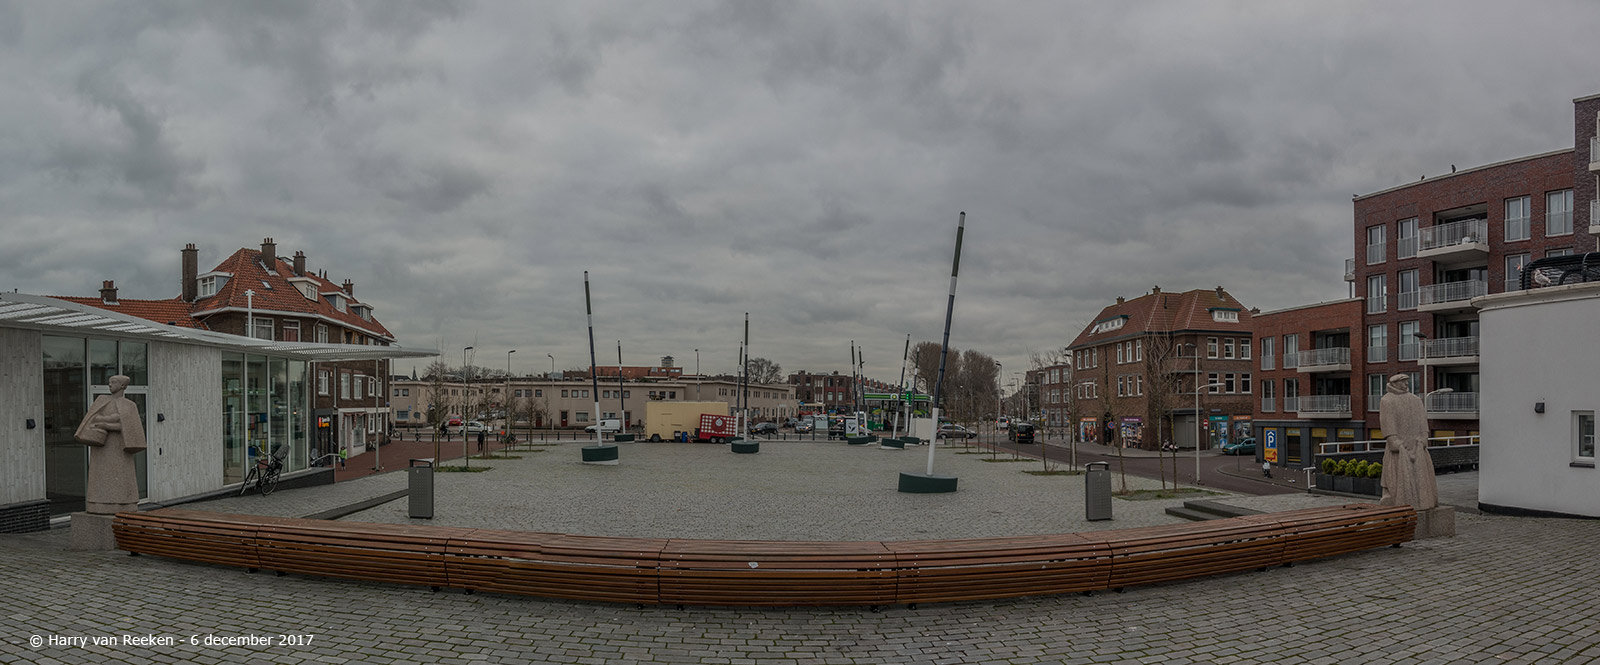 Radio-Holland-Plein-pano - 1